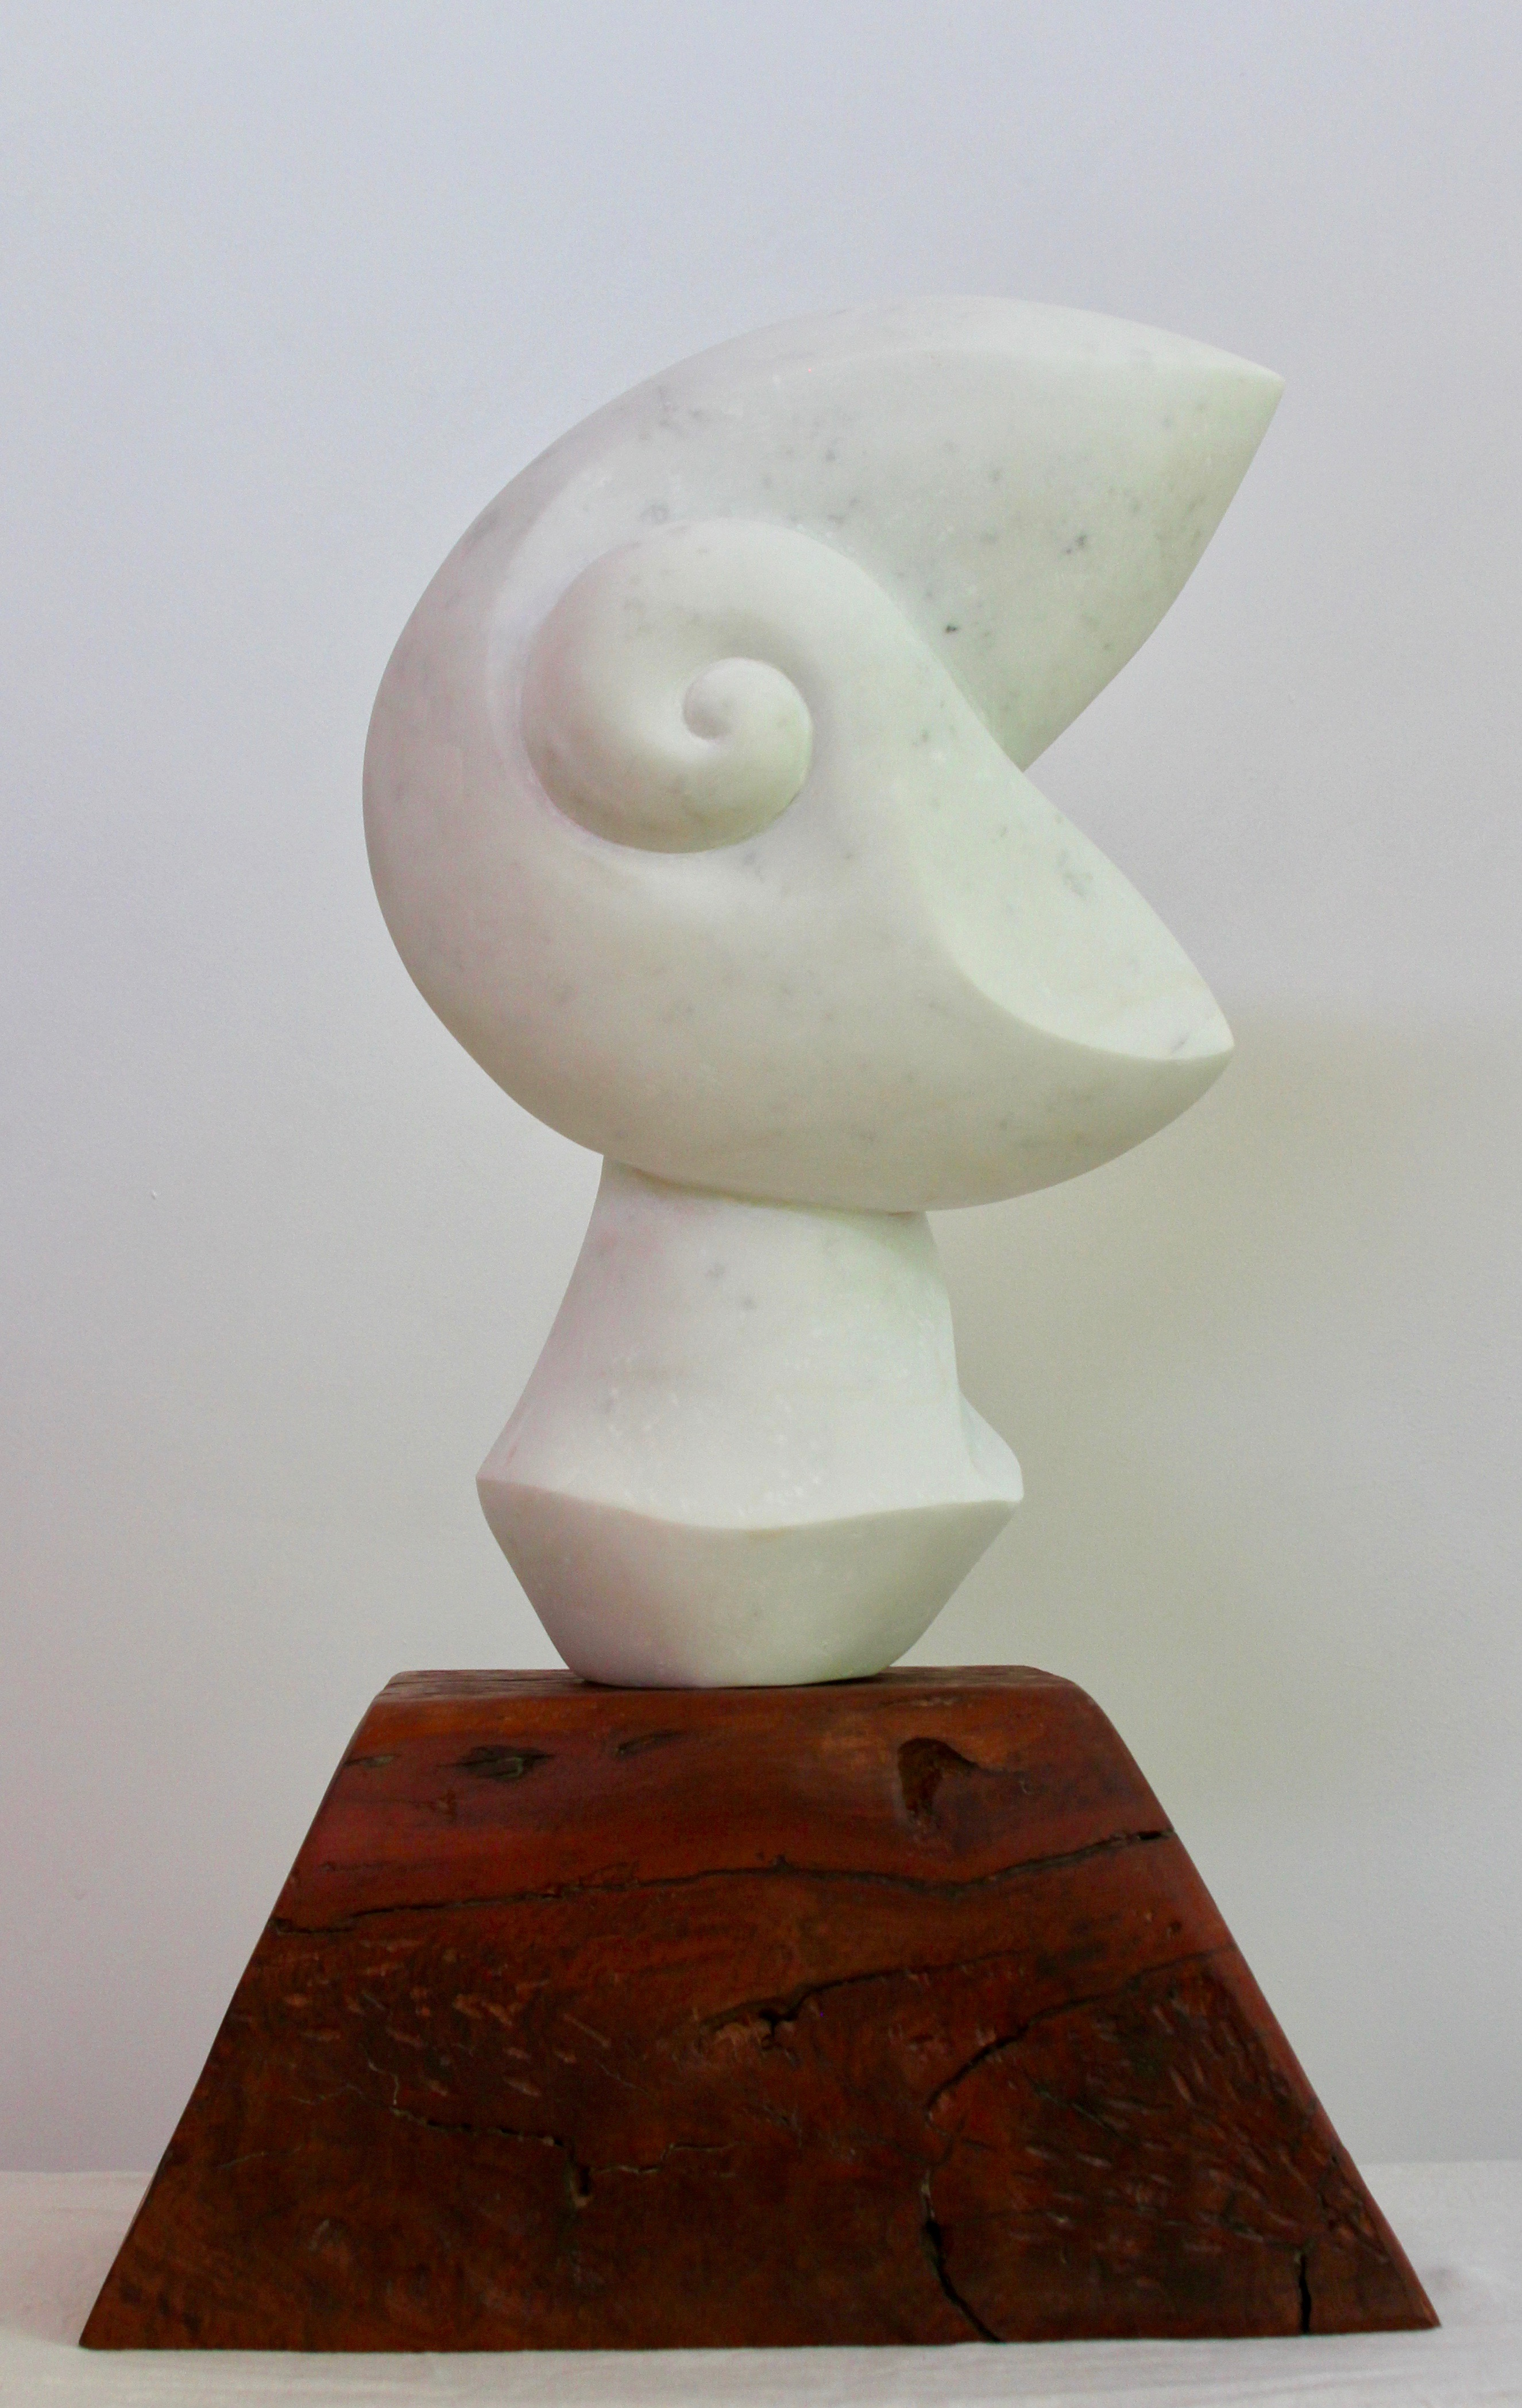 fine art, sculpture, marble, exhibiton, italian marble, carrara marble, abstract art, picasso